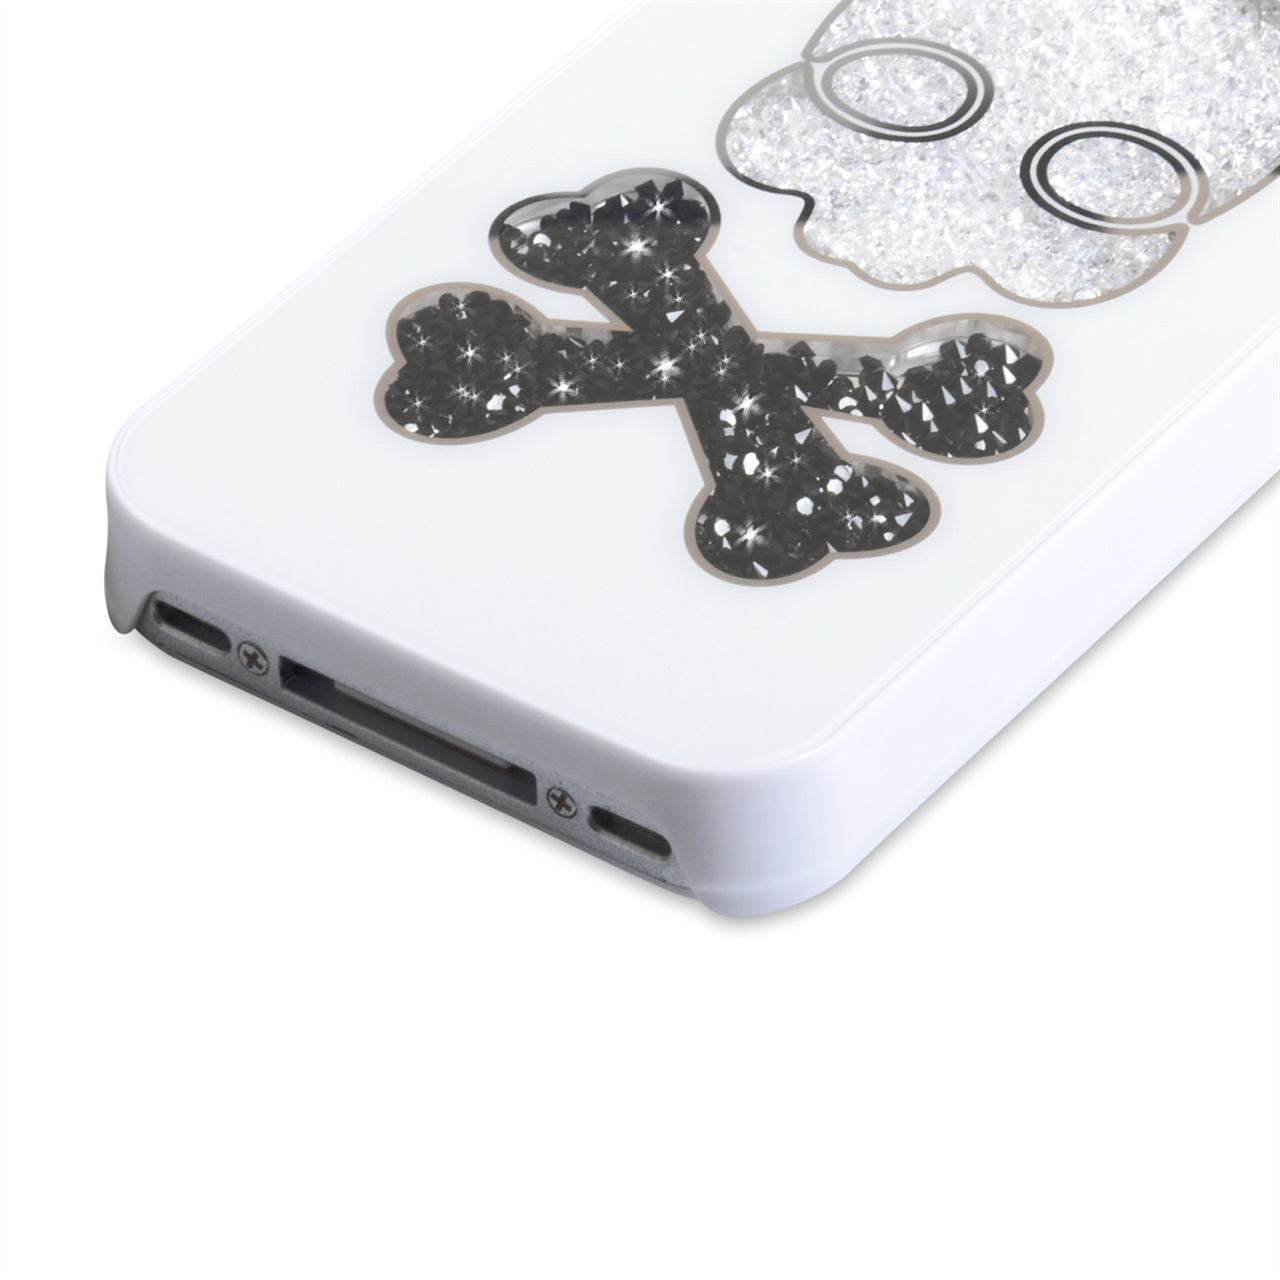 YouSave Accessories iPhone 4 / 4S Skull Hard Case - White